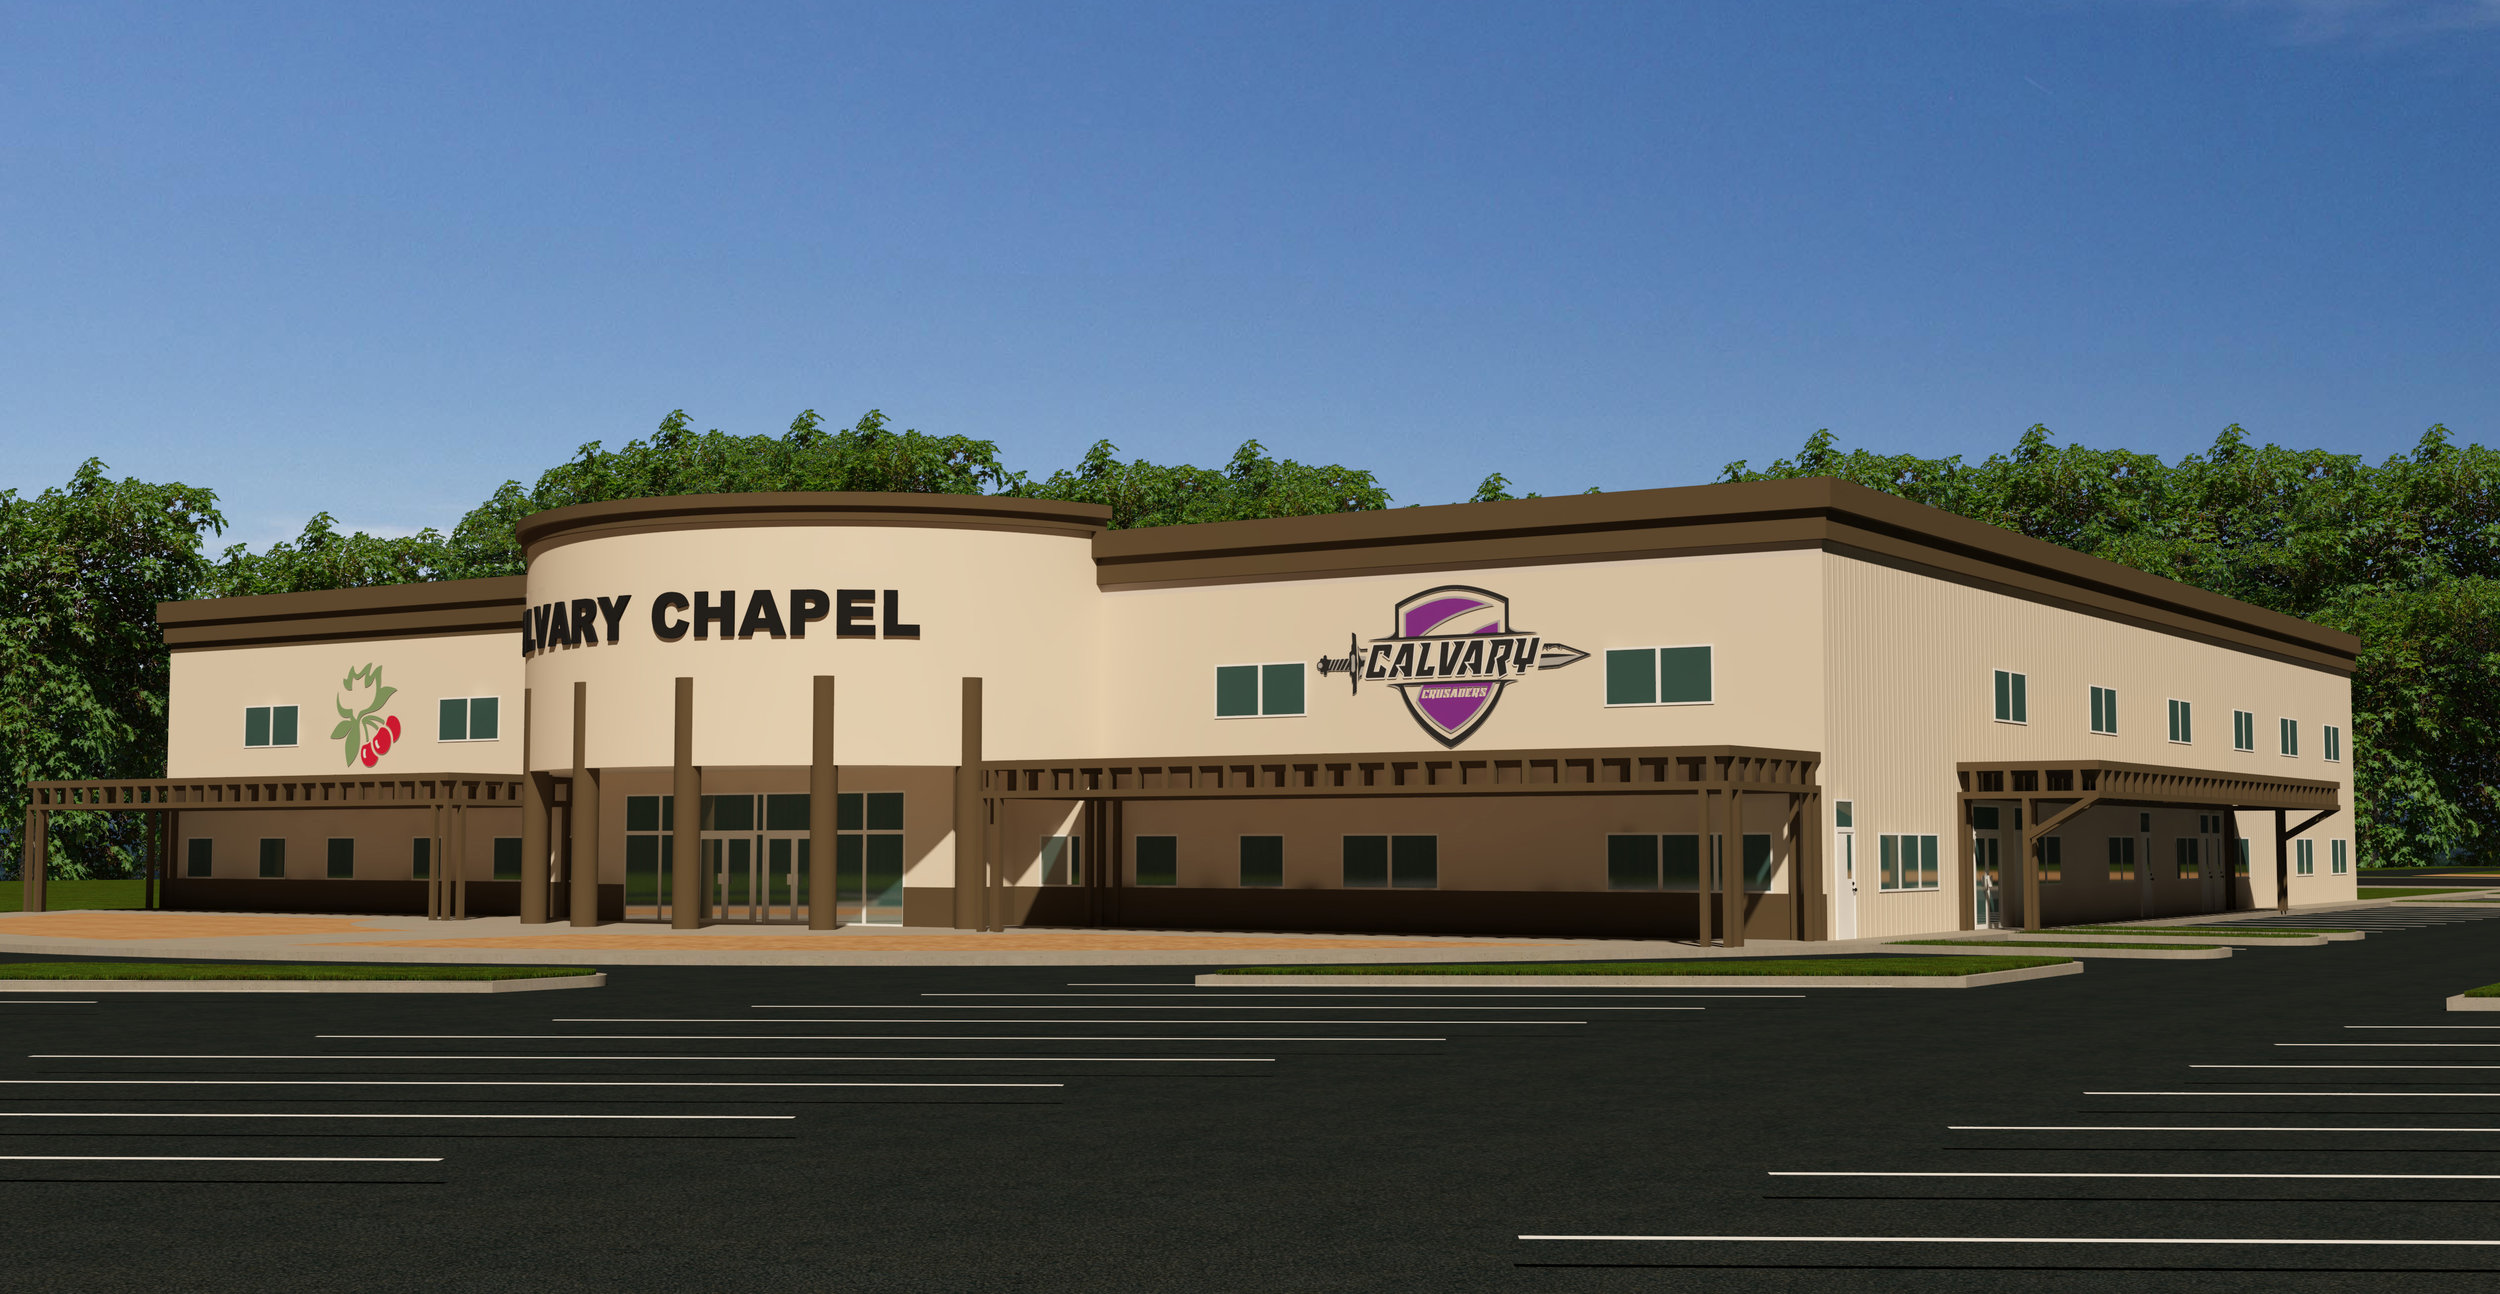 Proposed look of the new facility